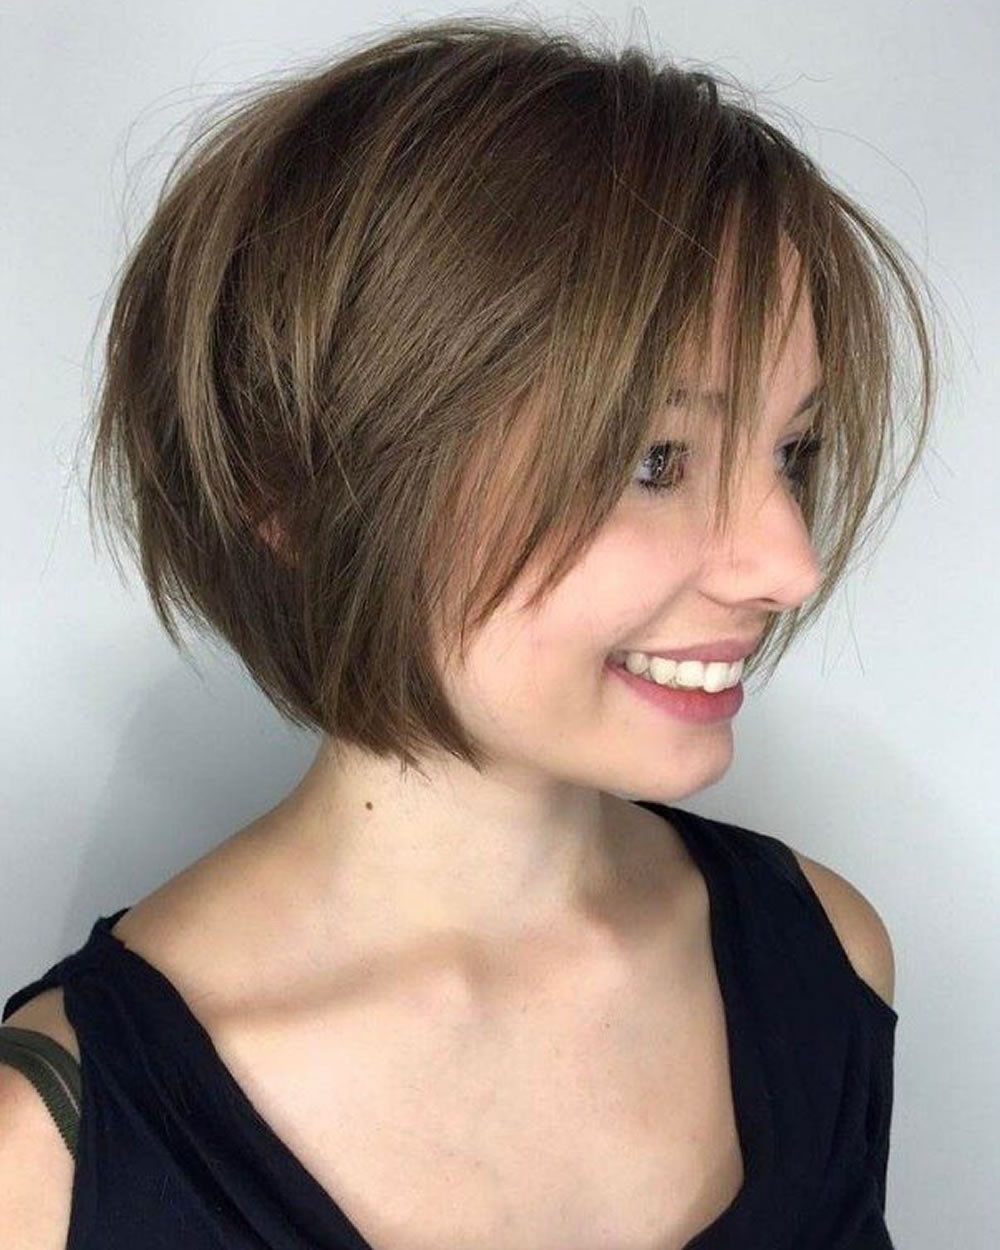 Best ideas about Layered Bob Haircuts 2019 . Save or Pin 30 Best Short Bob Haircuts with Bangs and Layered Bob Now.